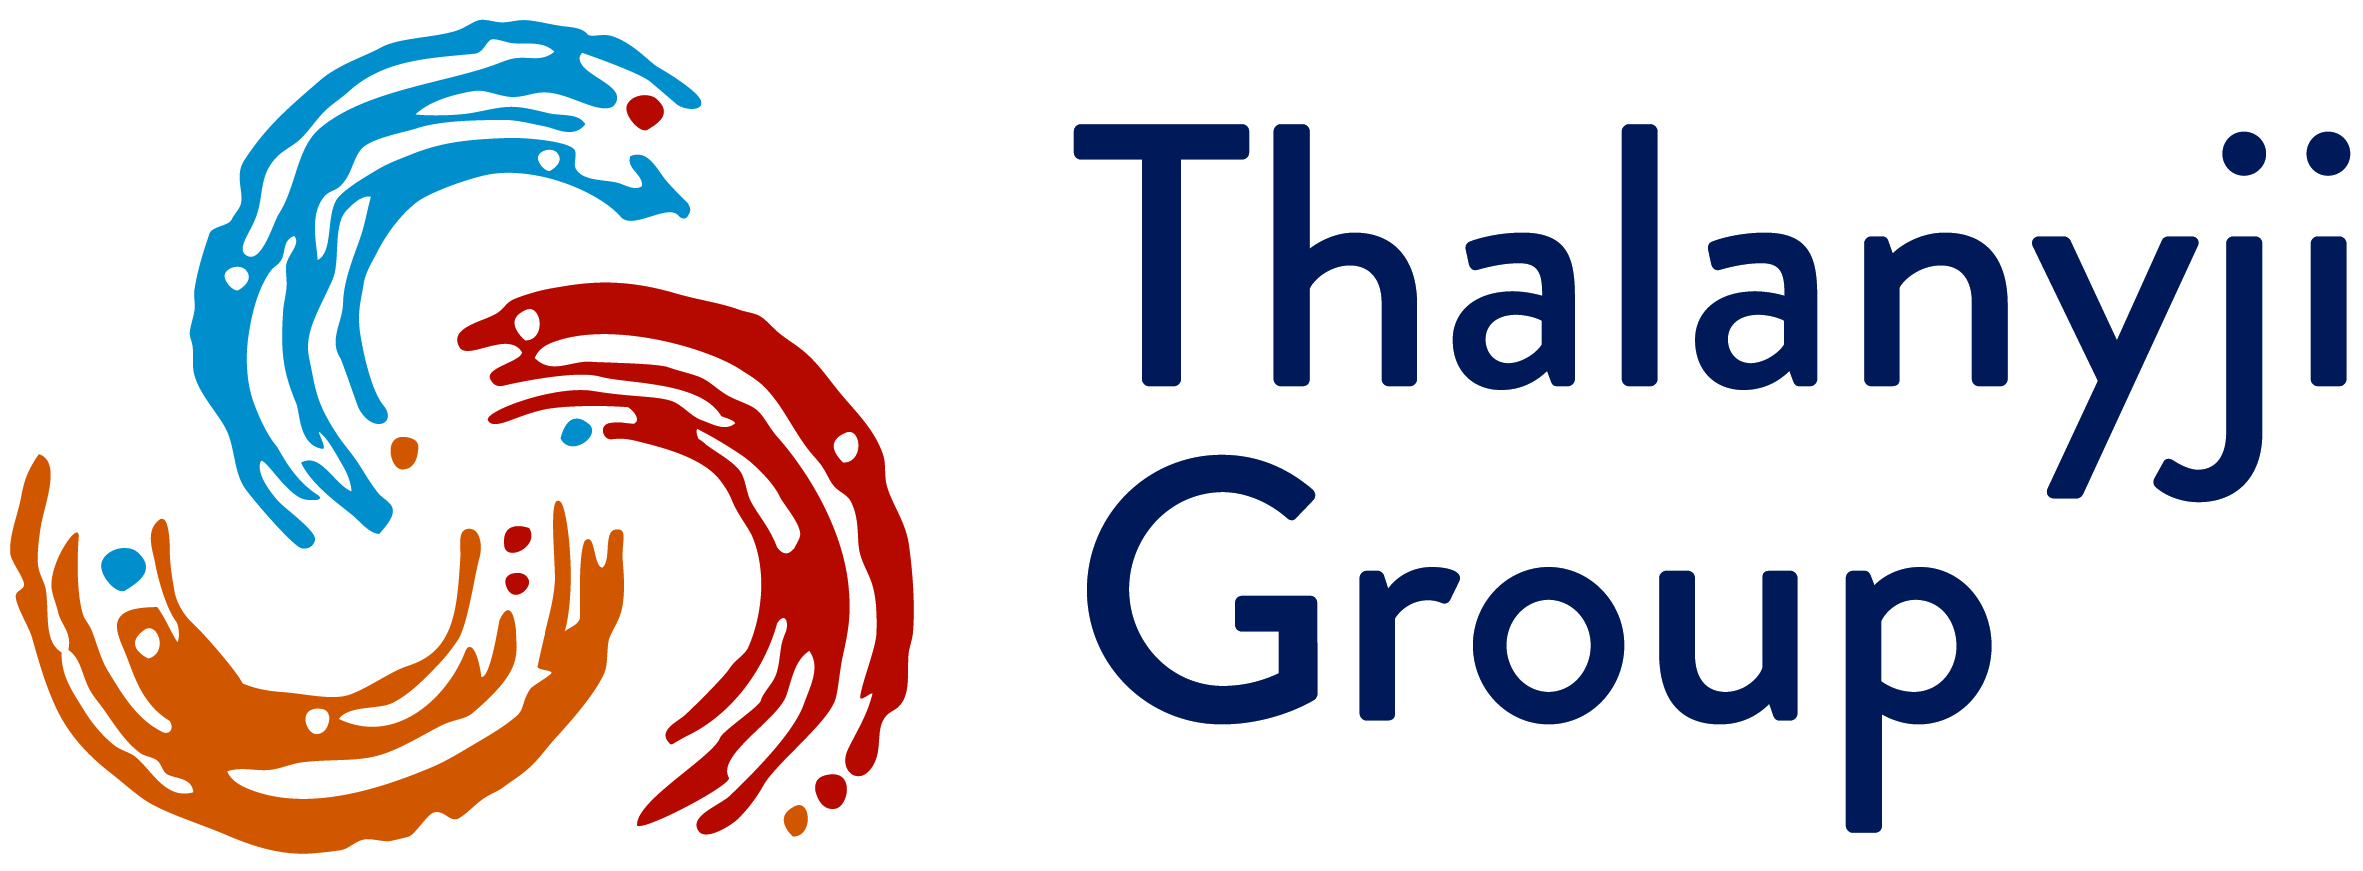 Thalanyji_group_logo_CMYK_colour.jpg